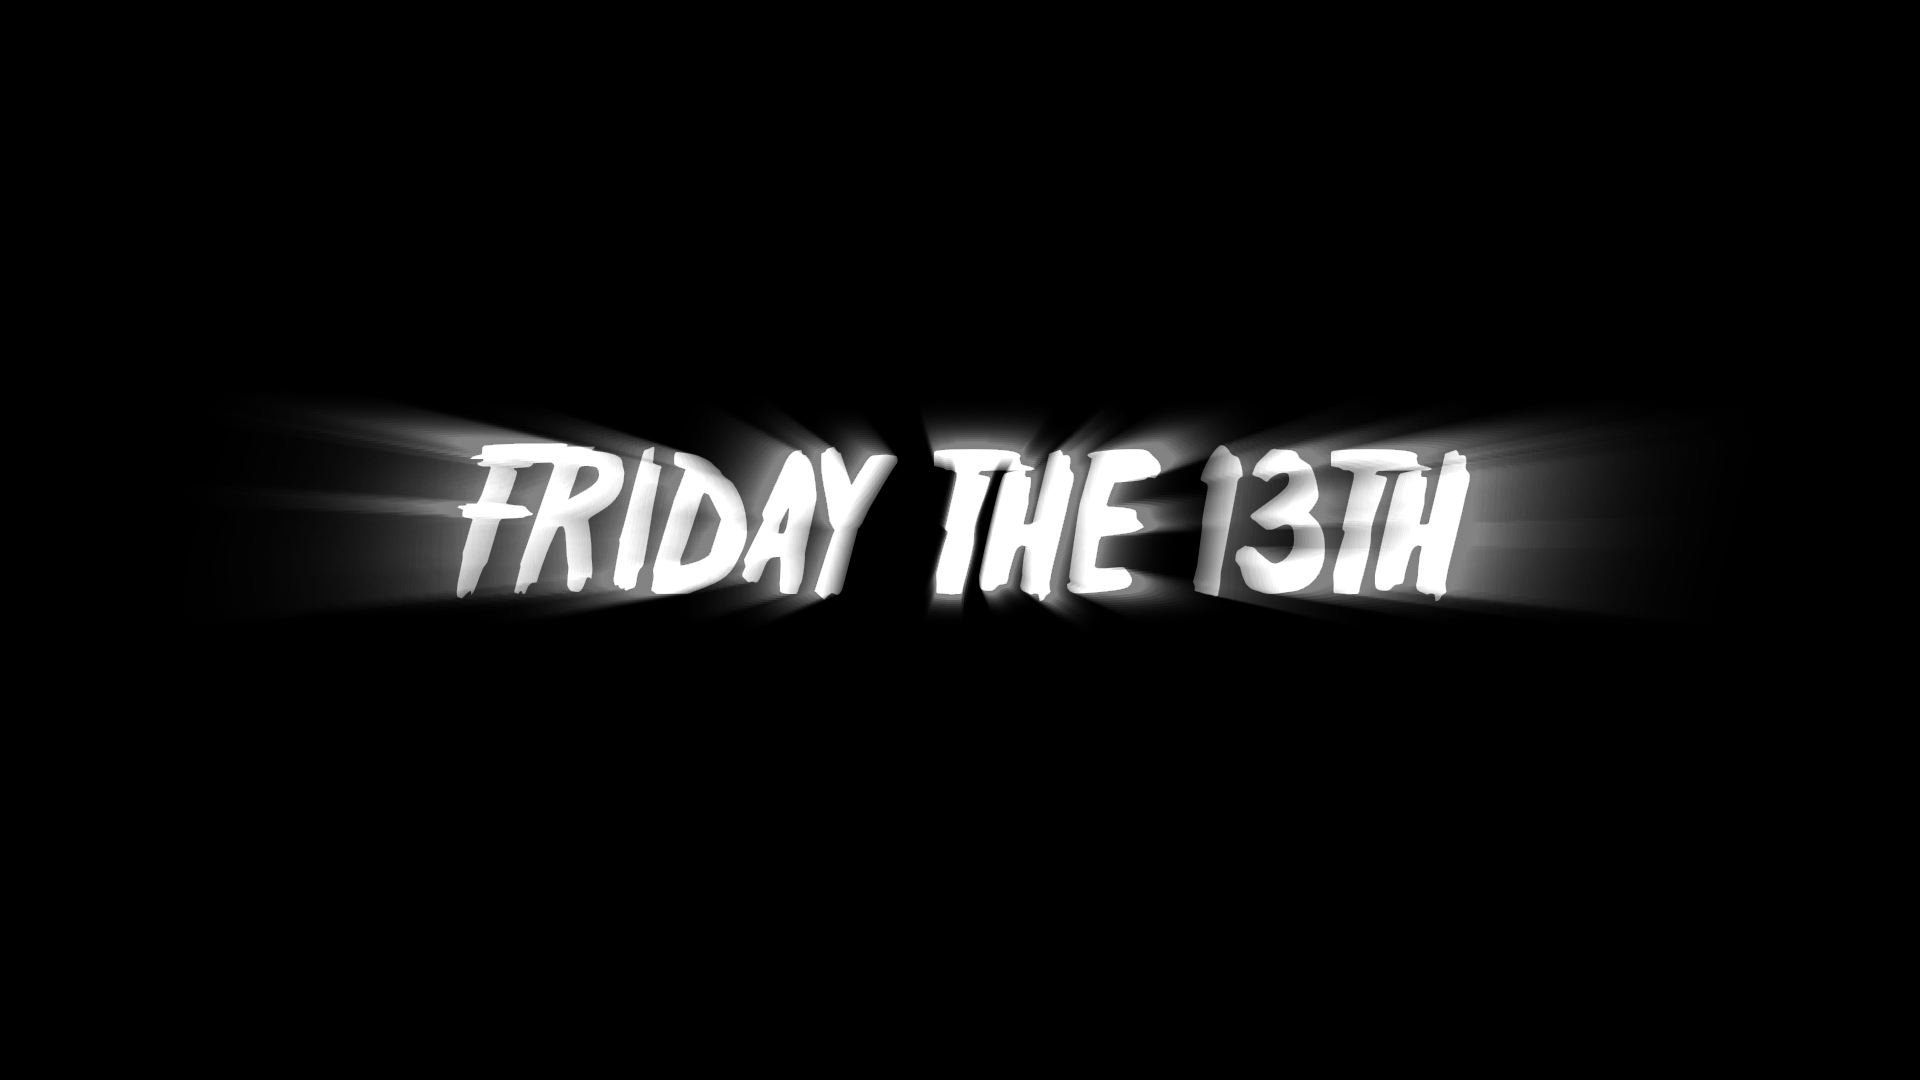 Friday The 13th Wallpaper Fun Images